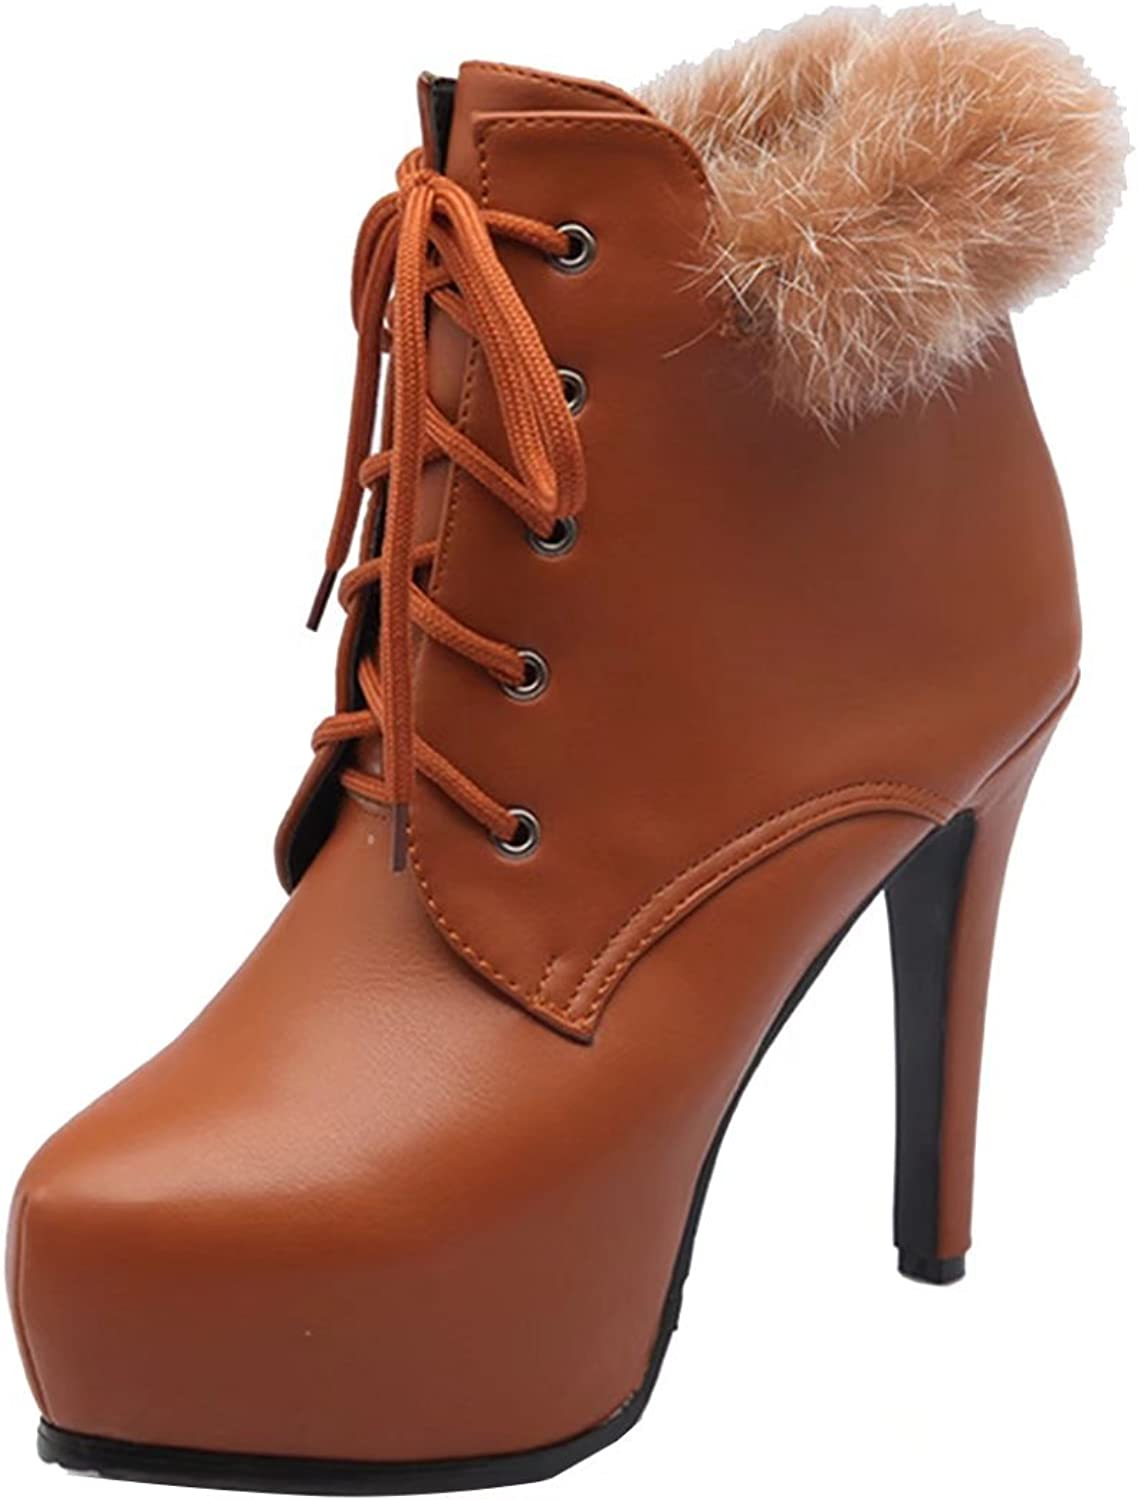 AIYOUMEI Women's Lace-up Round Toe Stilettos Autumn Winter Ankle Boots with Fur